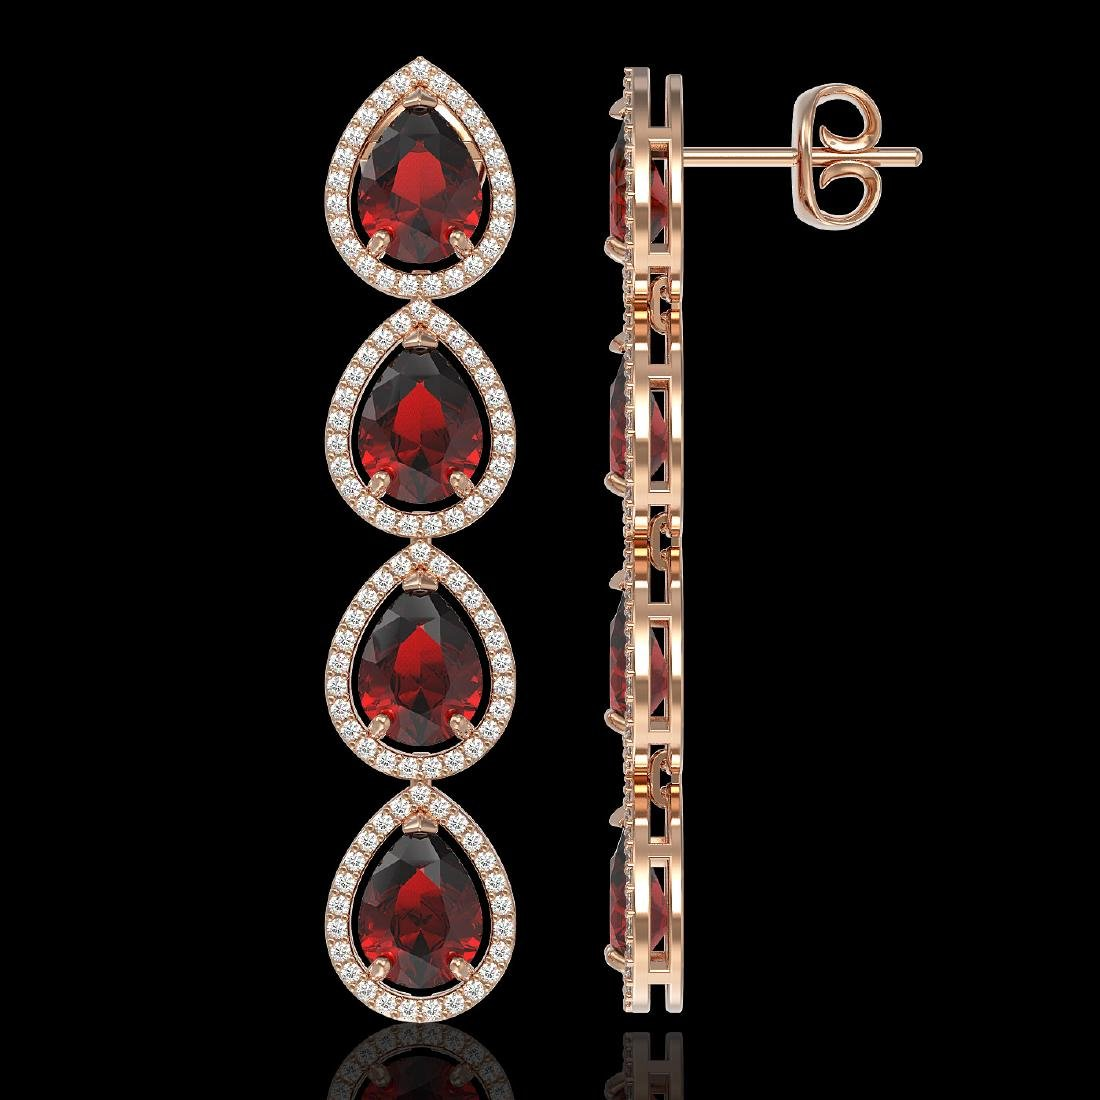 9.25 CTW Garnet & Diamond Halo Earrings 10K Rose Gold - 2